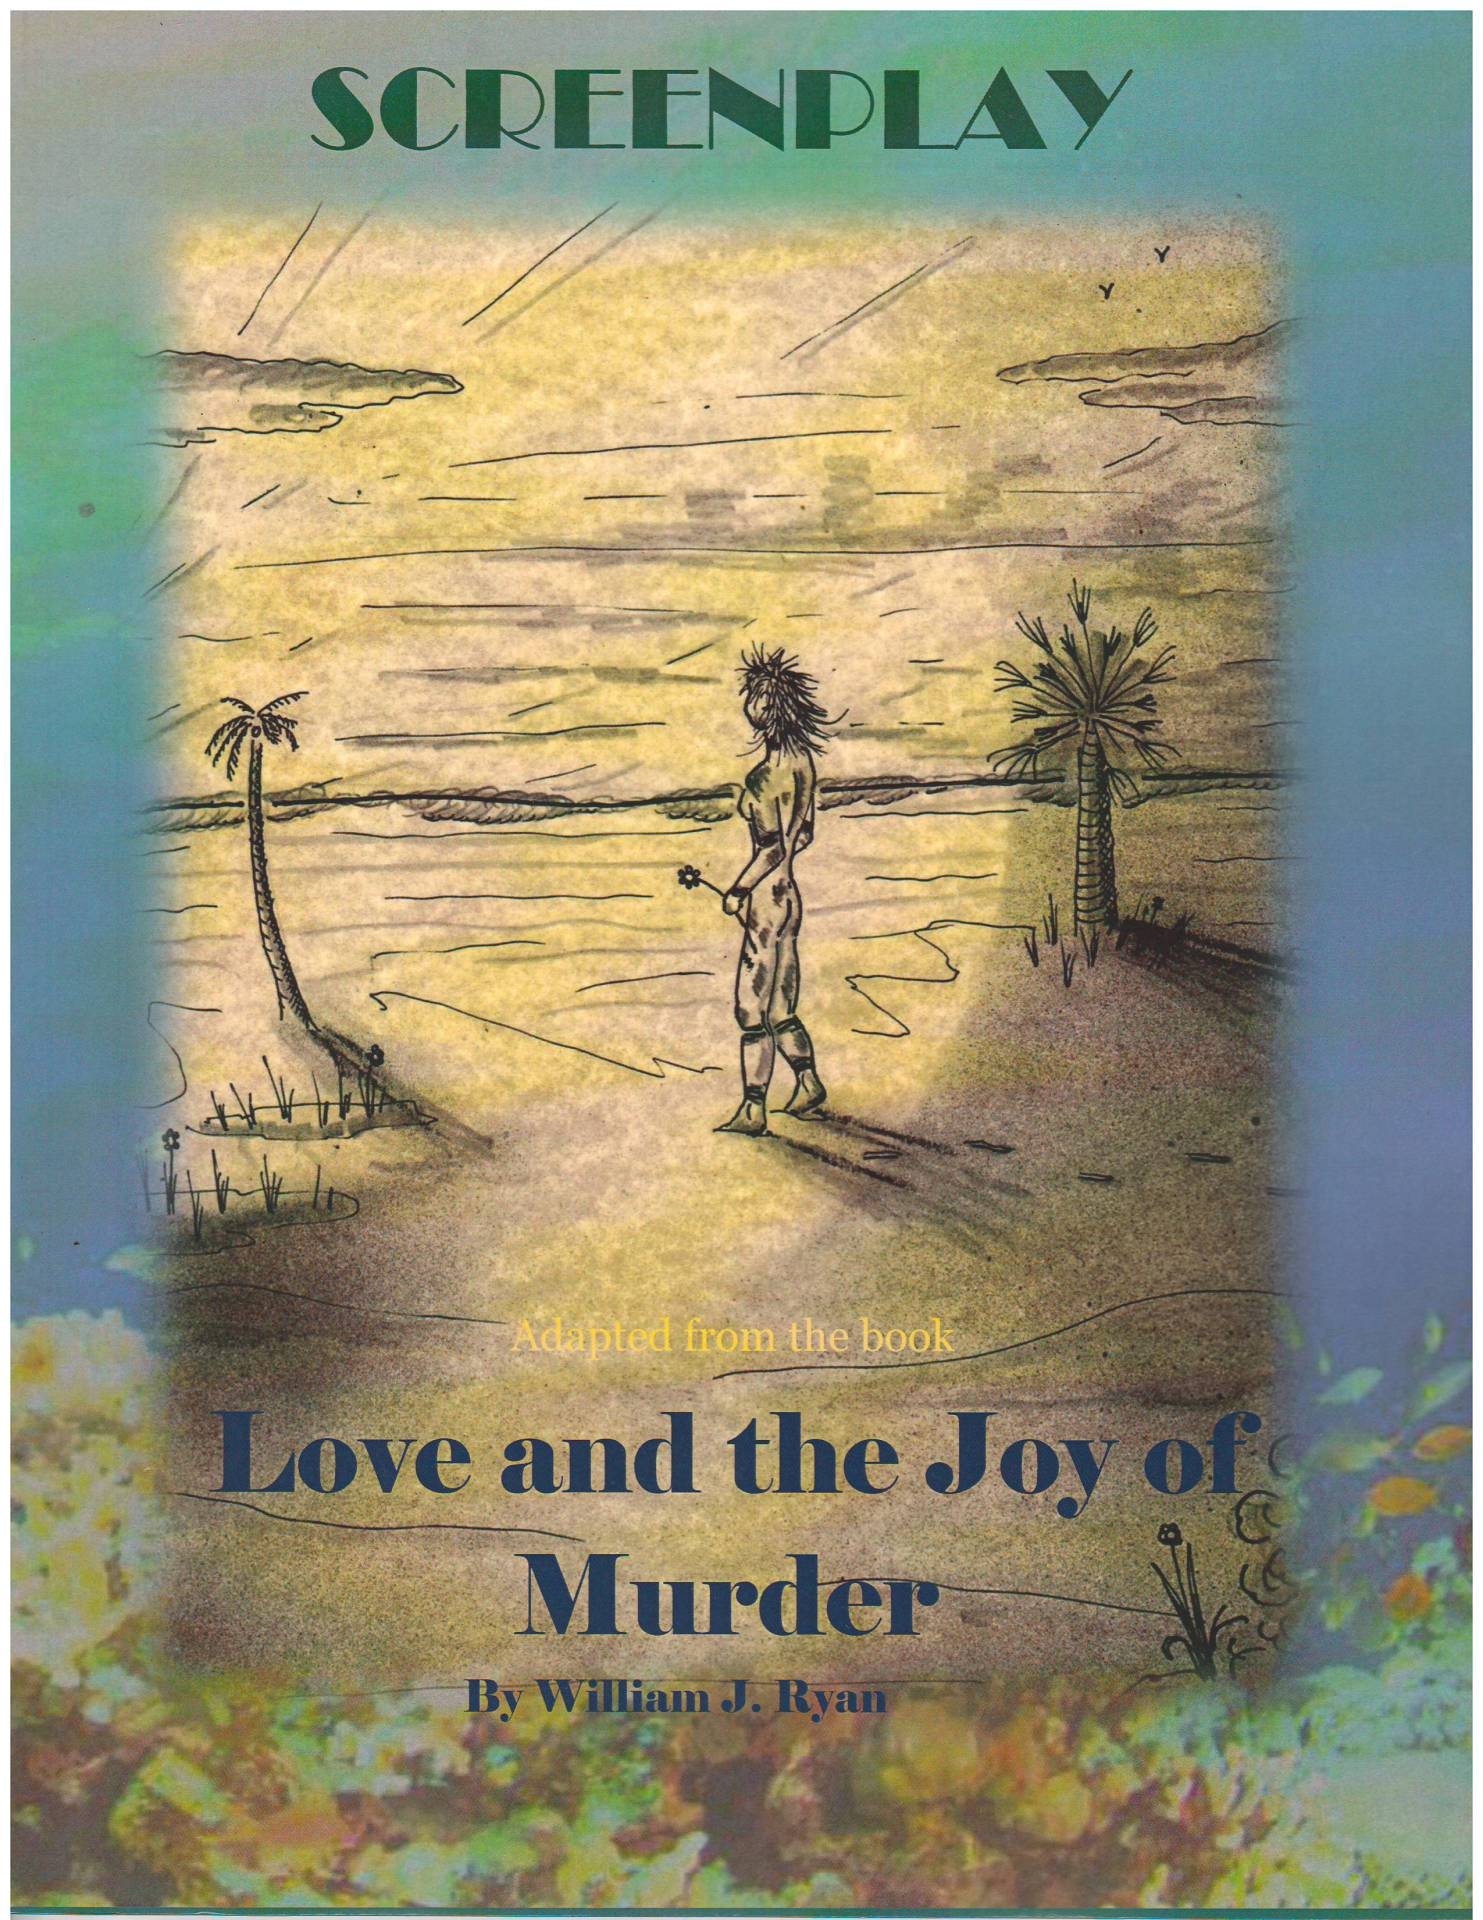 Love and the Joy of Murder